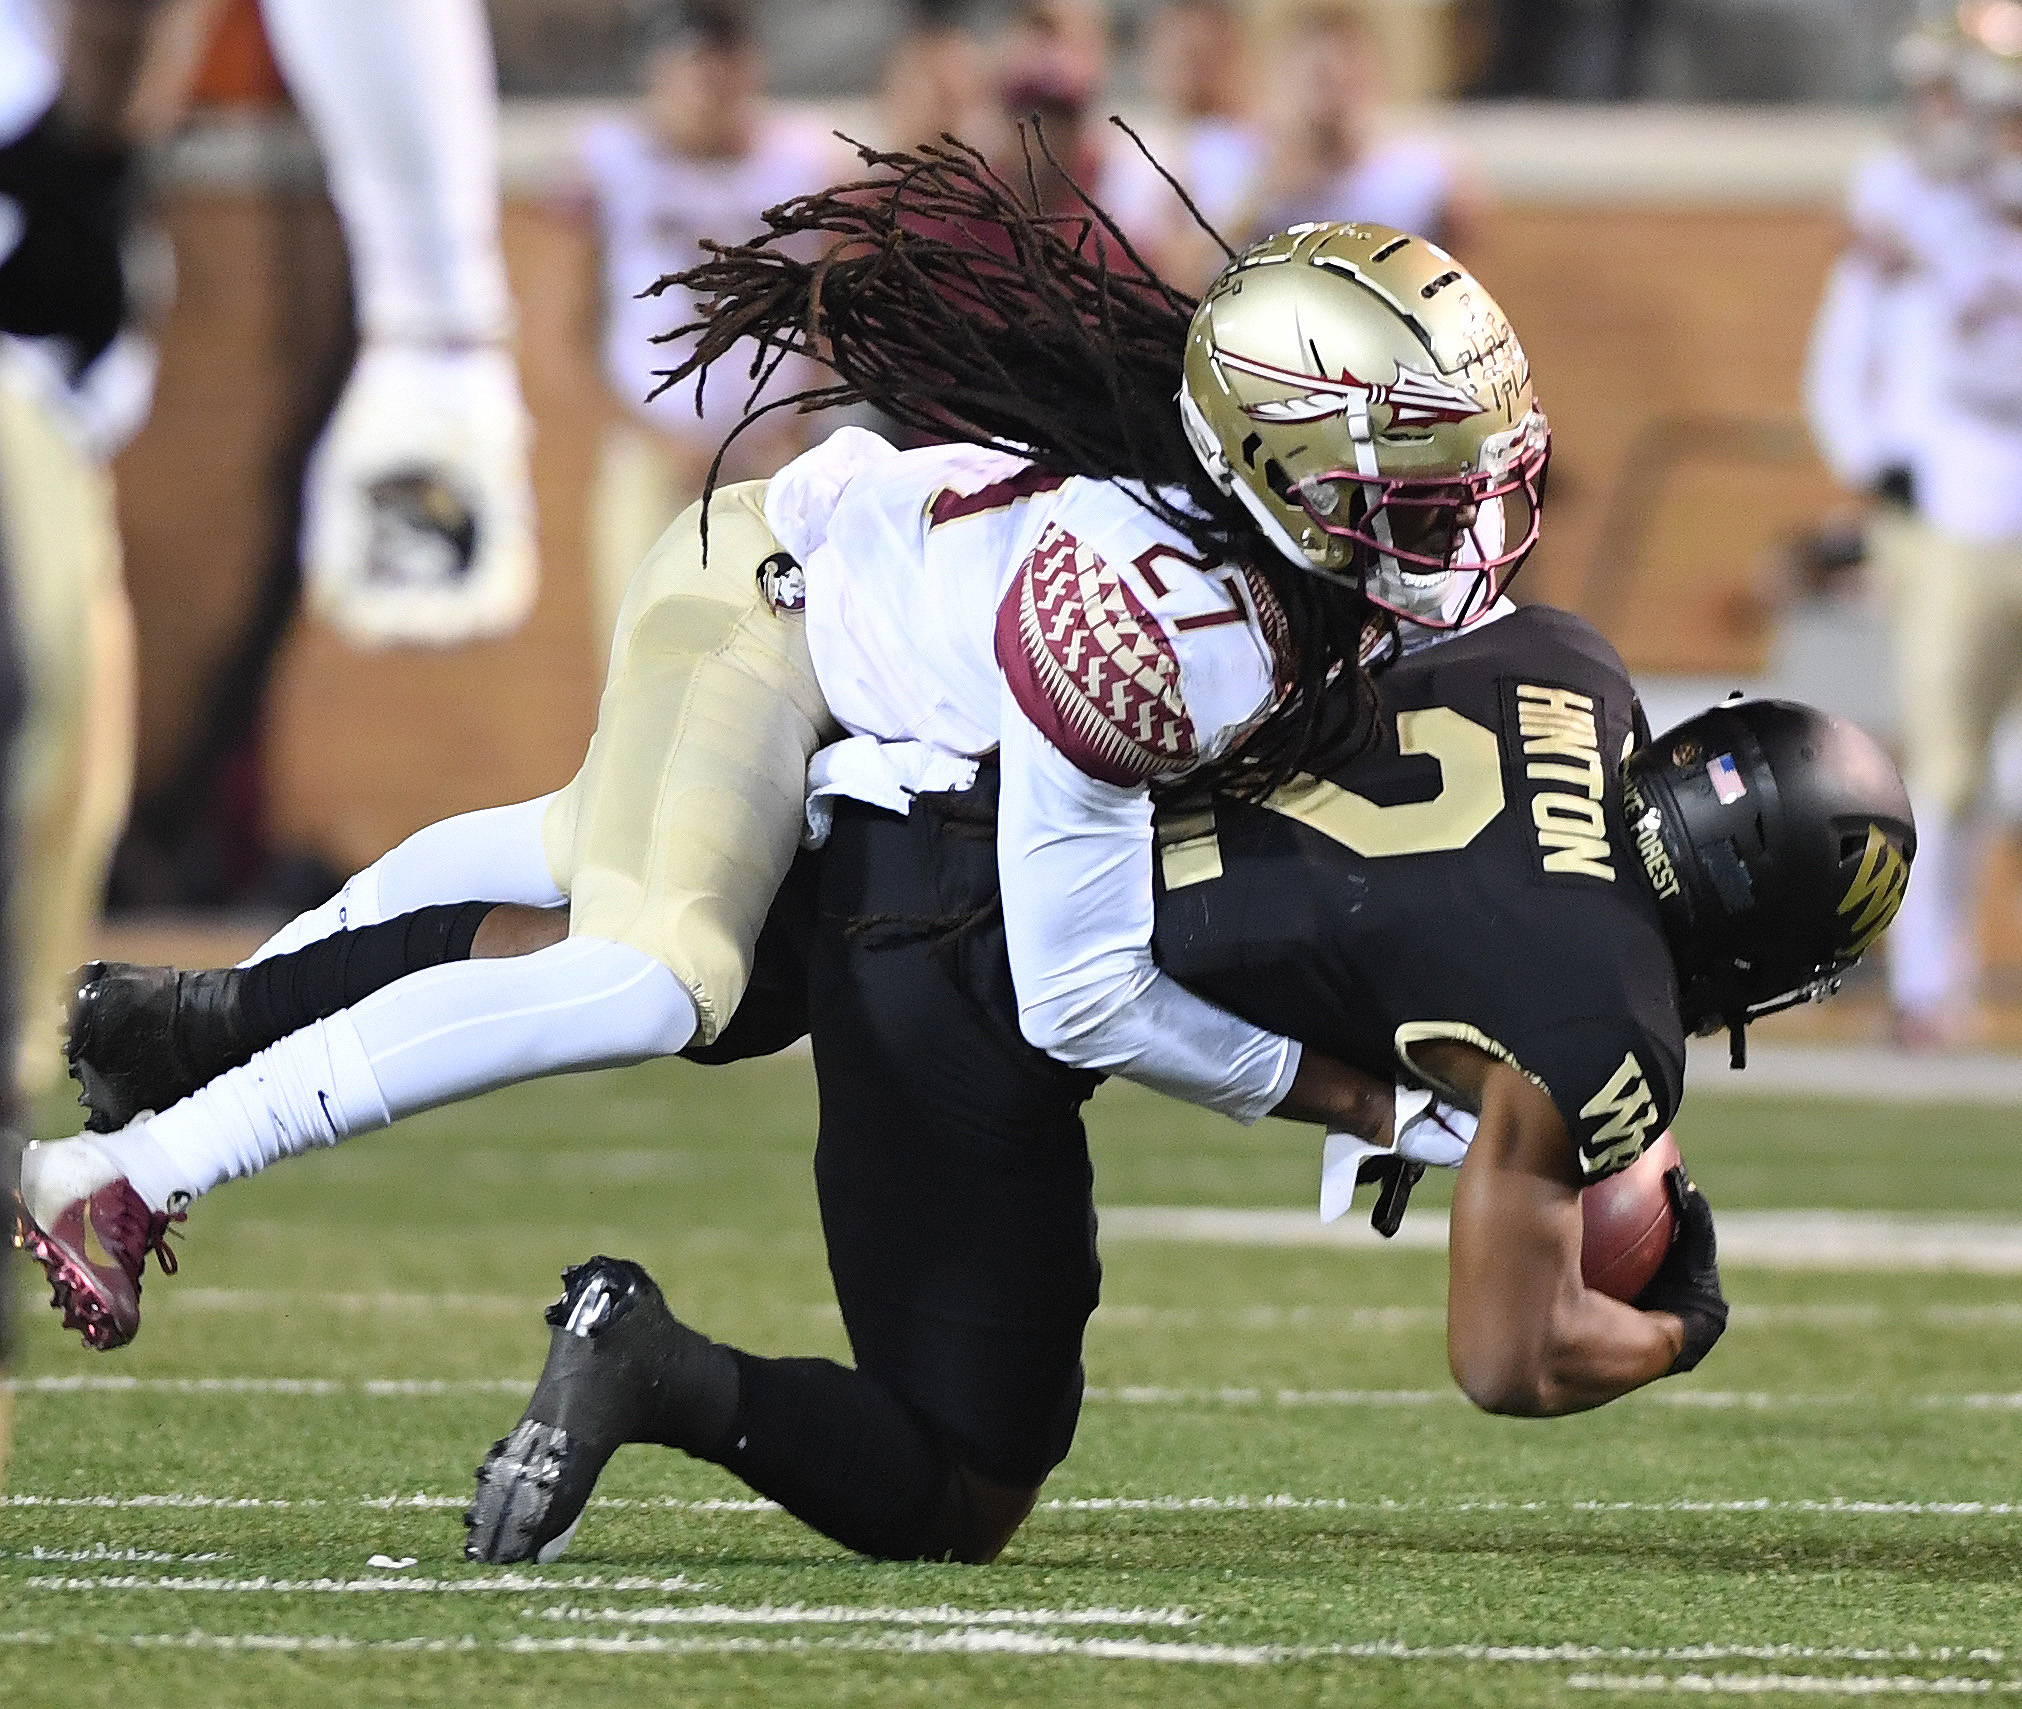 DFNS Staff 2021 Football Predictions: Wake Forest